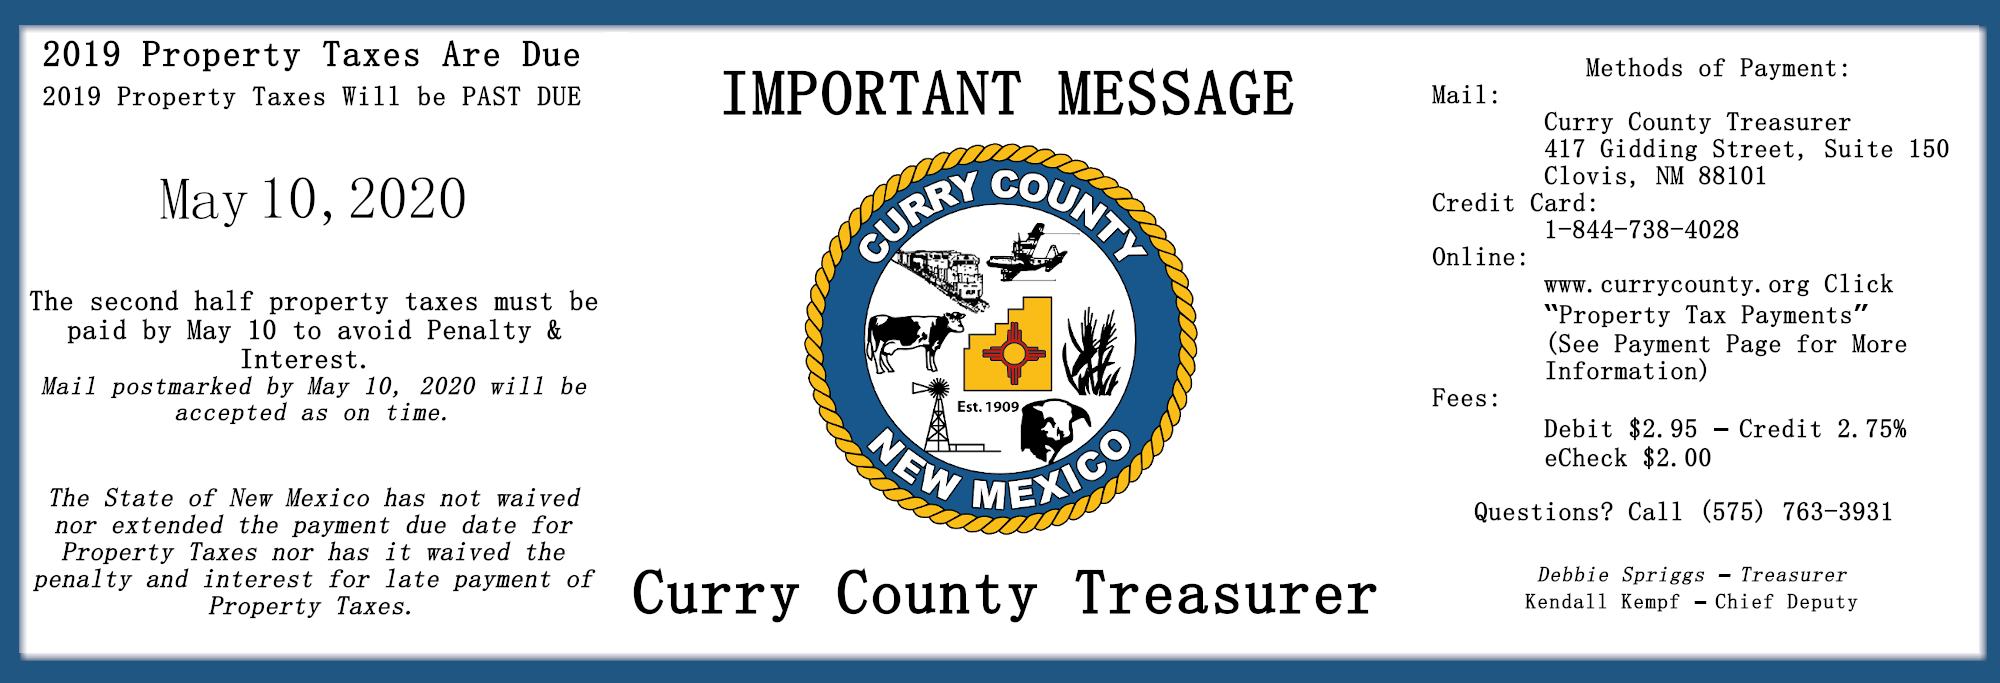 Treasurer Notice that Property Taxes are due before May 10th, 2020